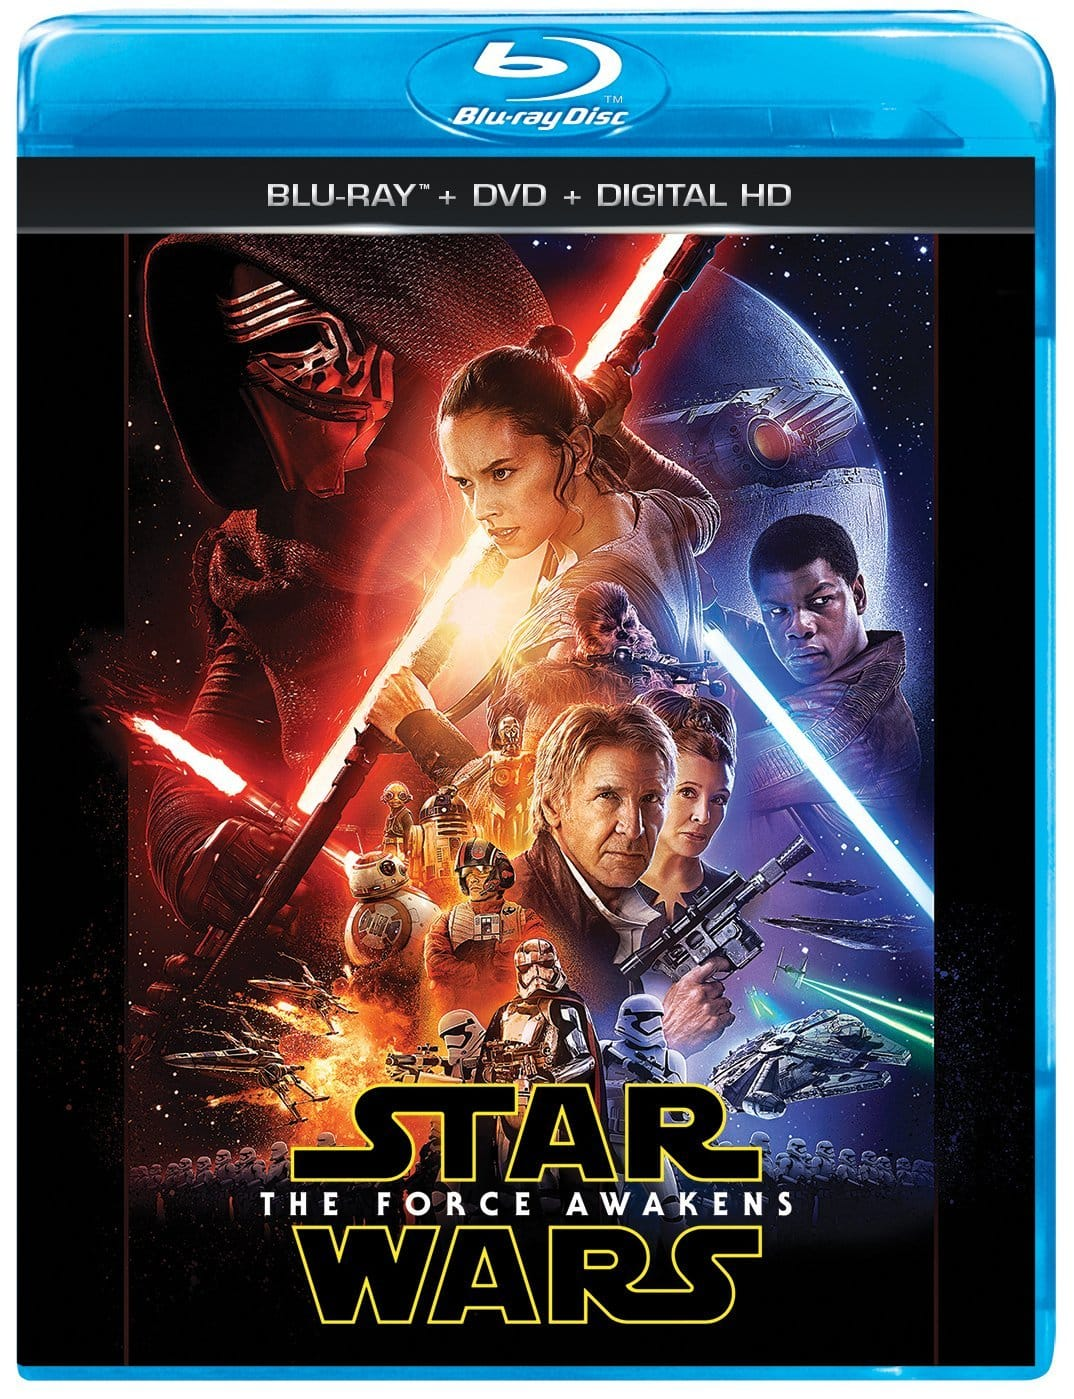 Star Wars: The Force Awakens Blu-Ray + DVD + Digital HD Free Prime shipping $17